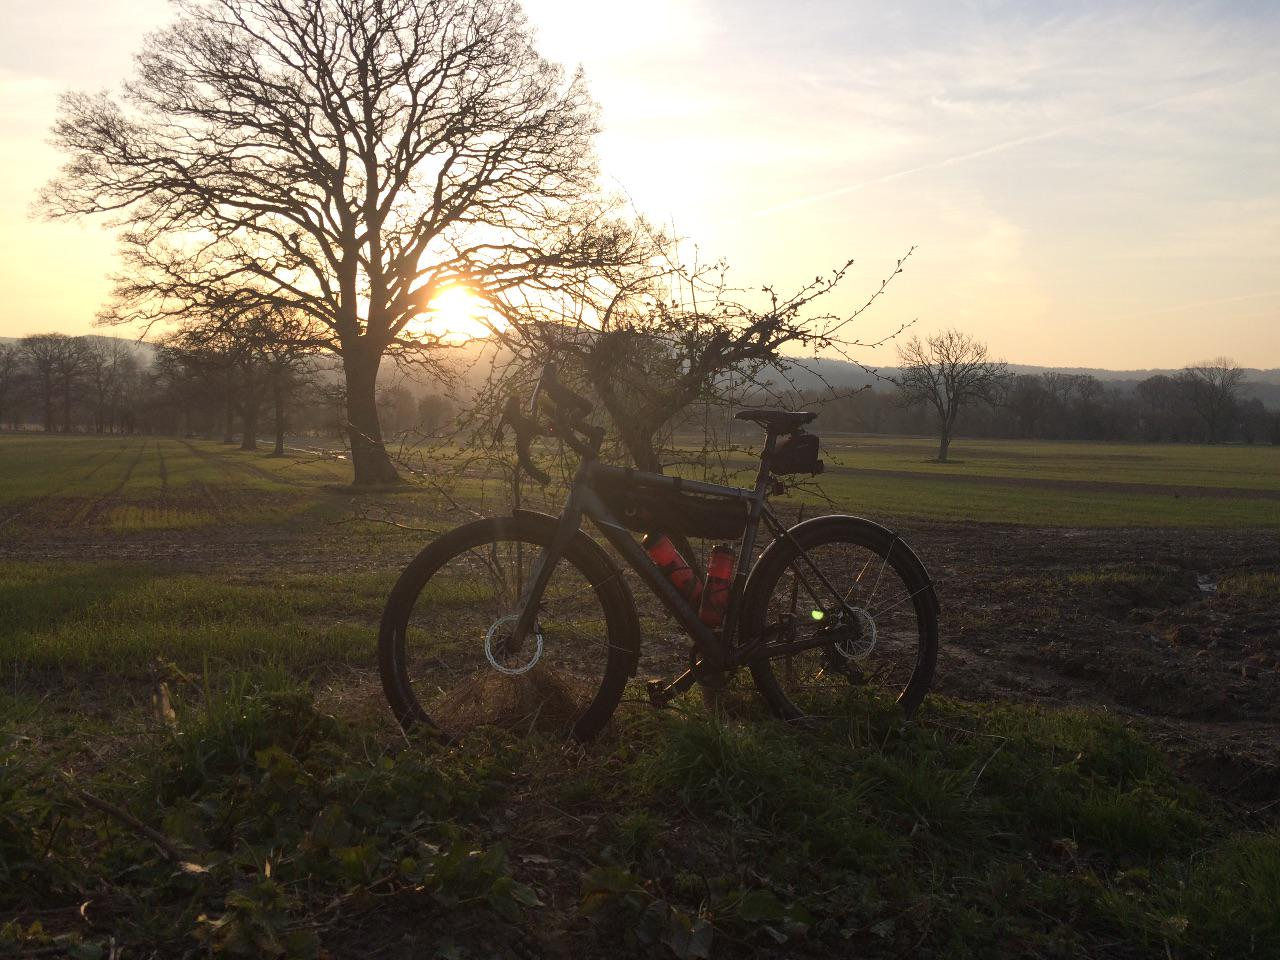 A gravel bike silhouetted against trees and hills at sunrise